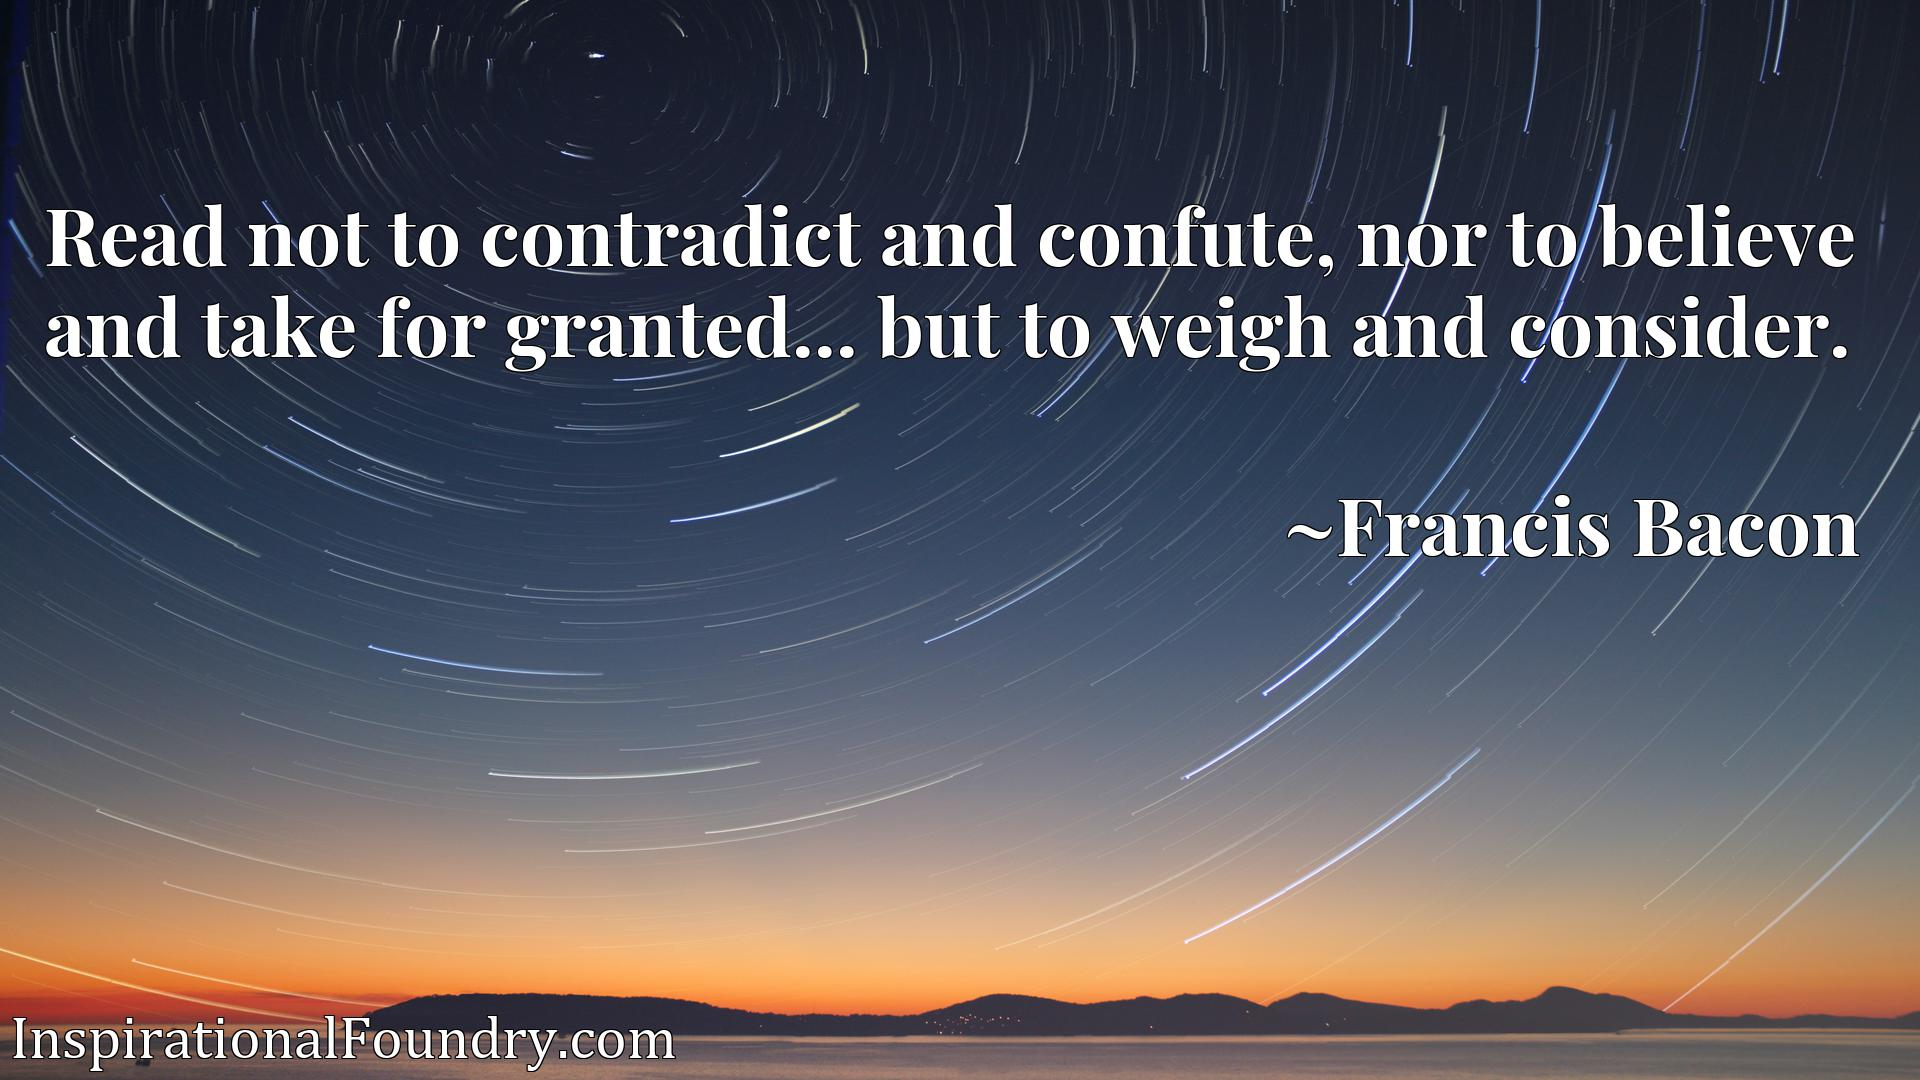 Read not to contradict and confute, nor to believe and take for granted... but to weigh and consider.